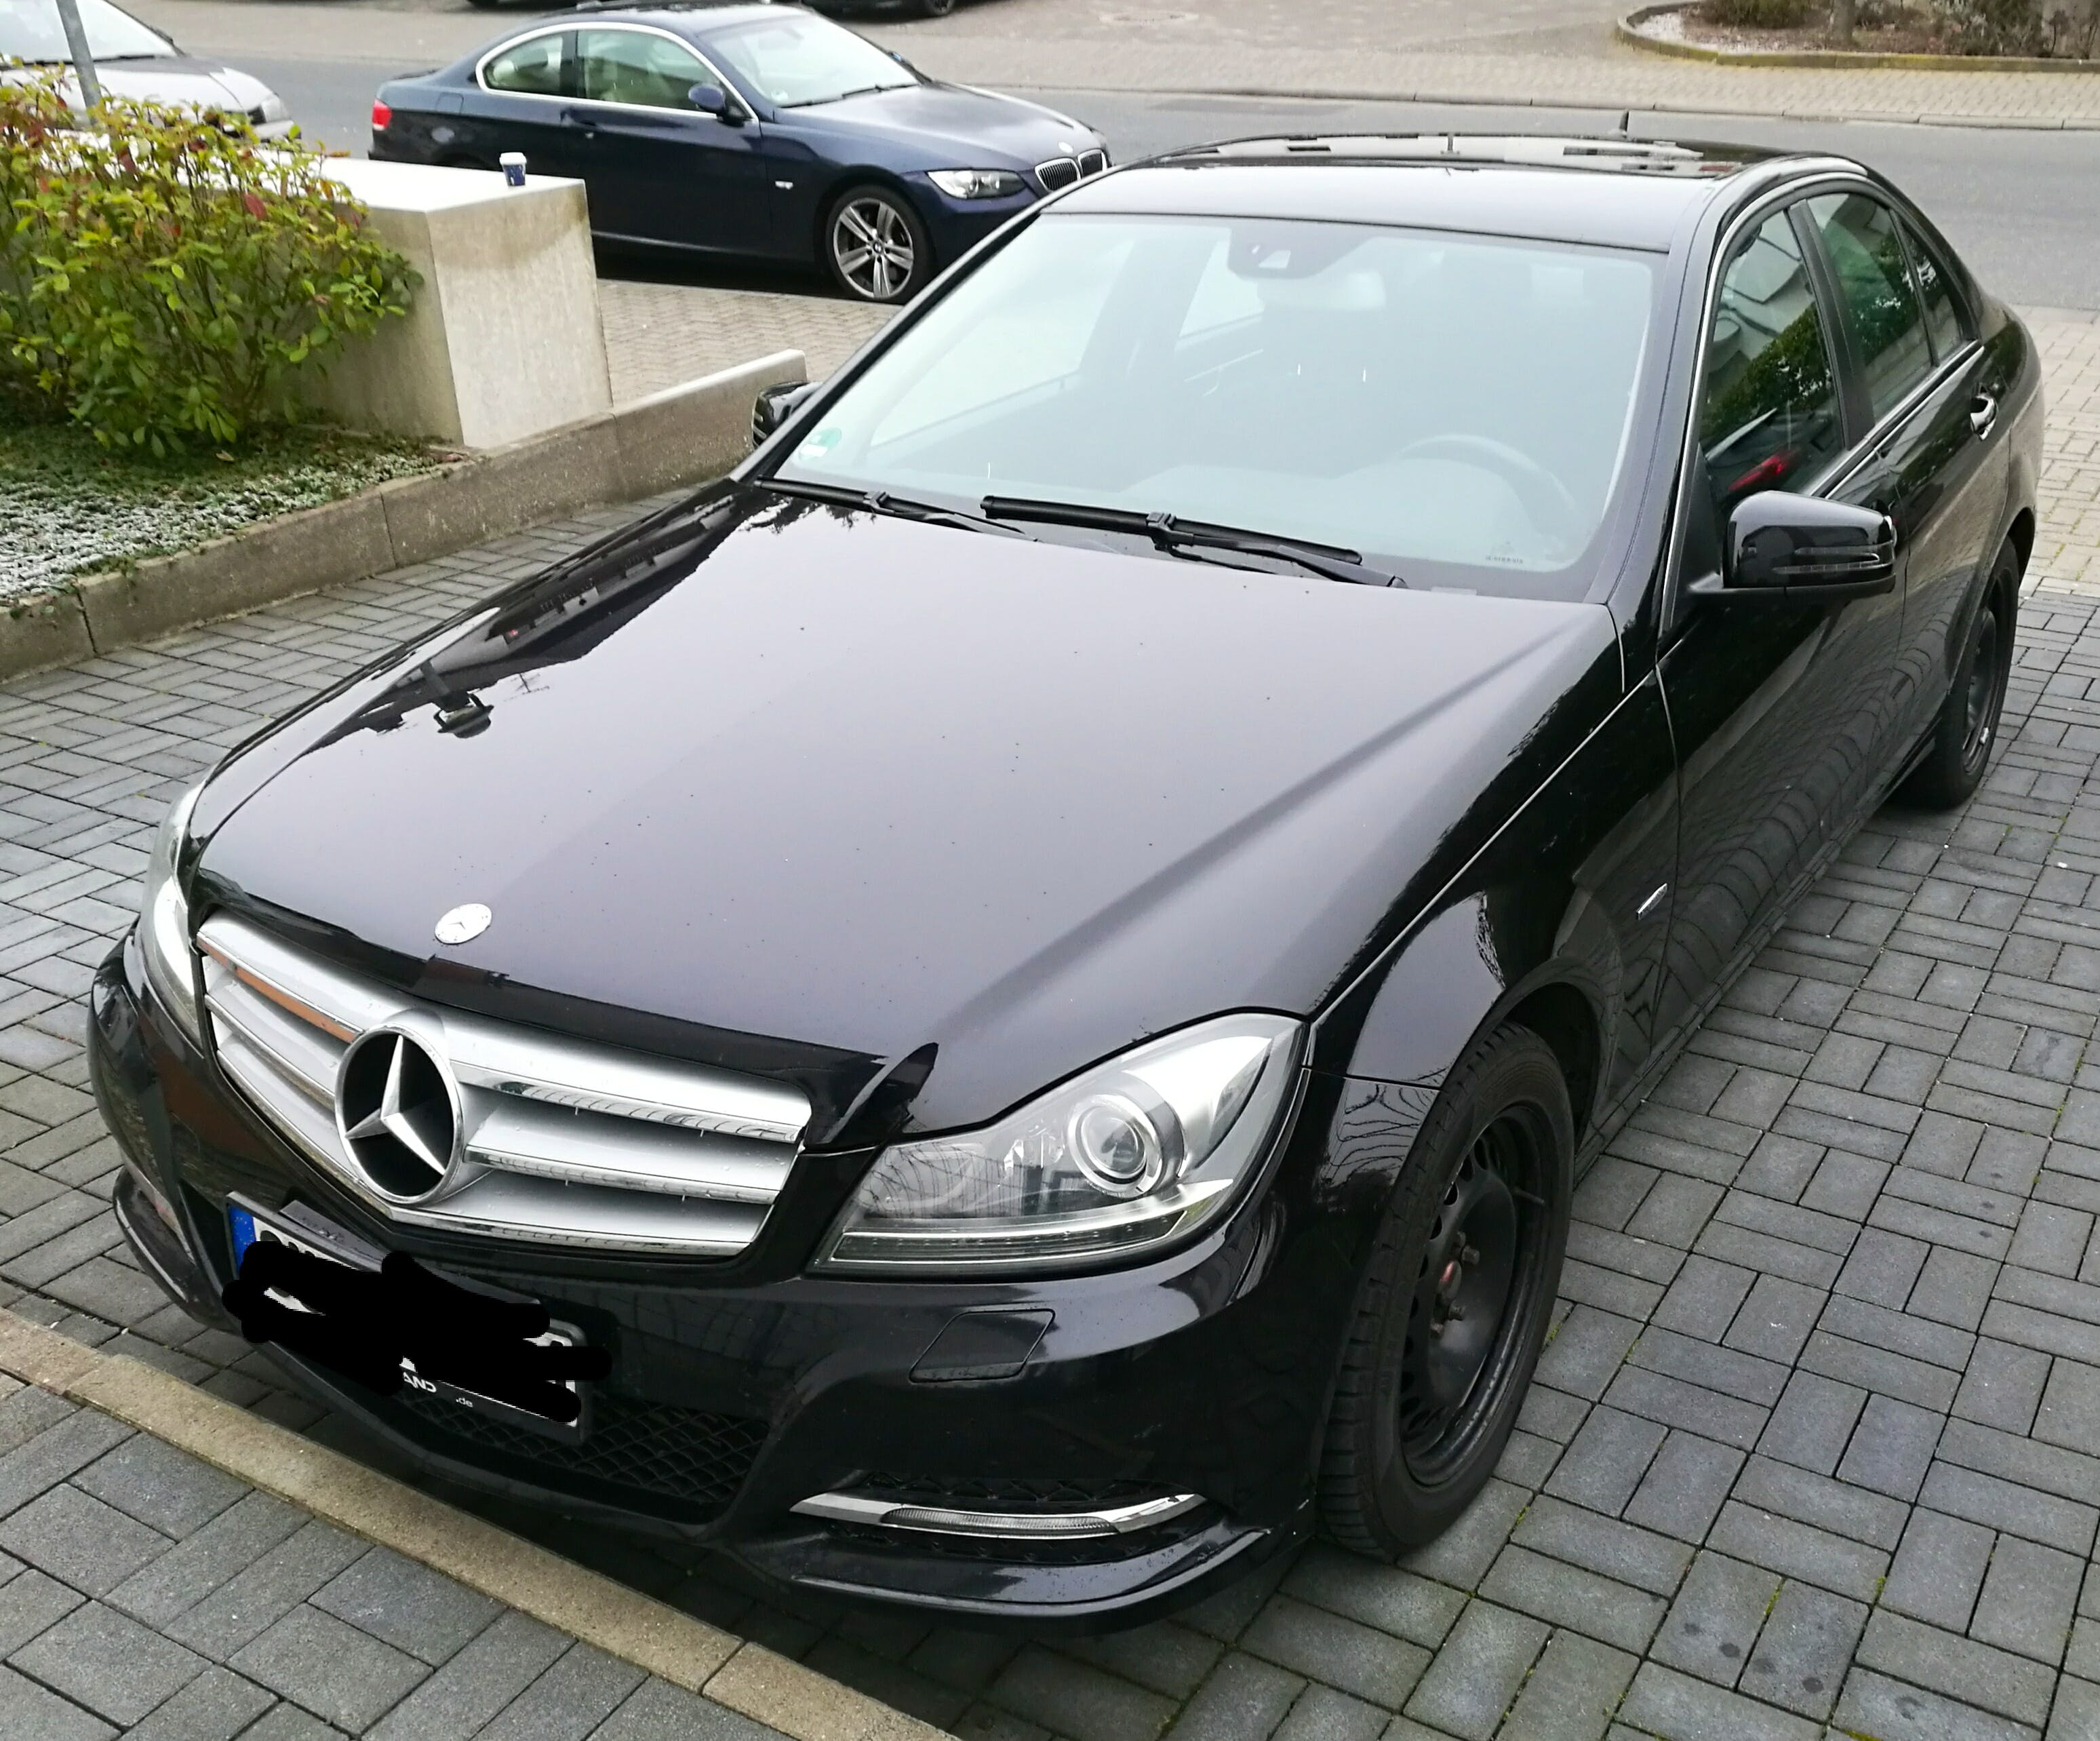 Mercedes C-Klasse 200 TDI mit CD-Player